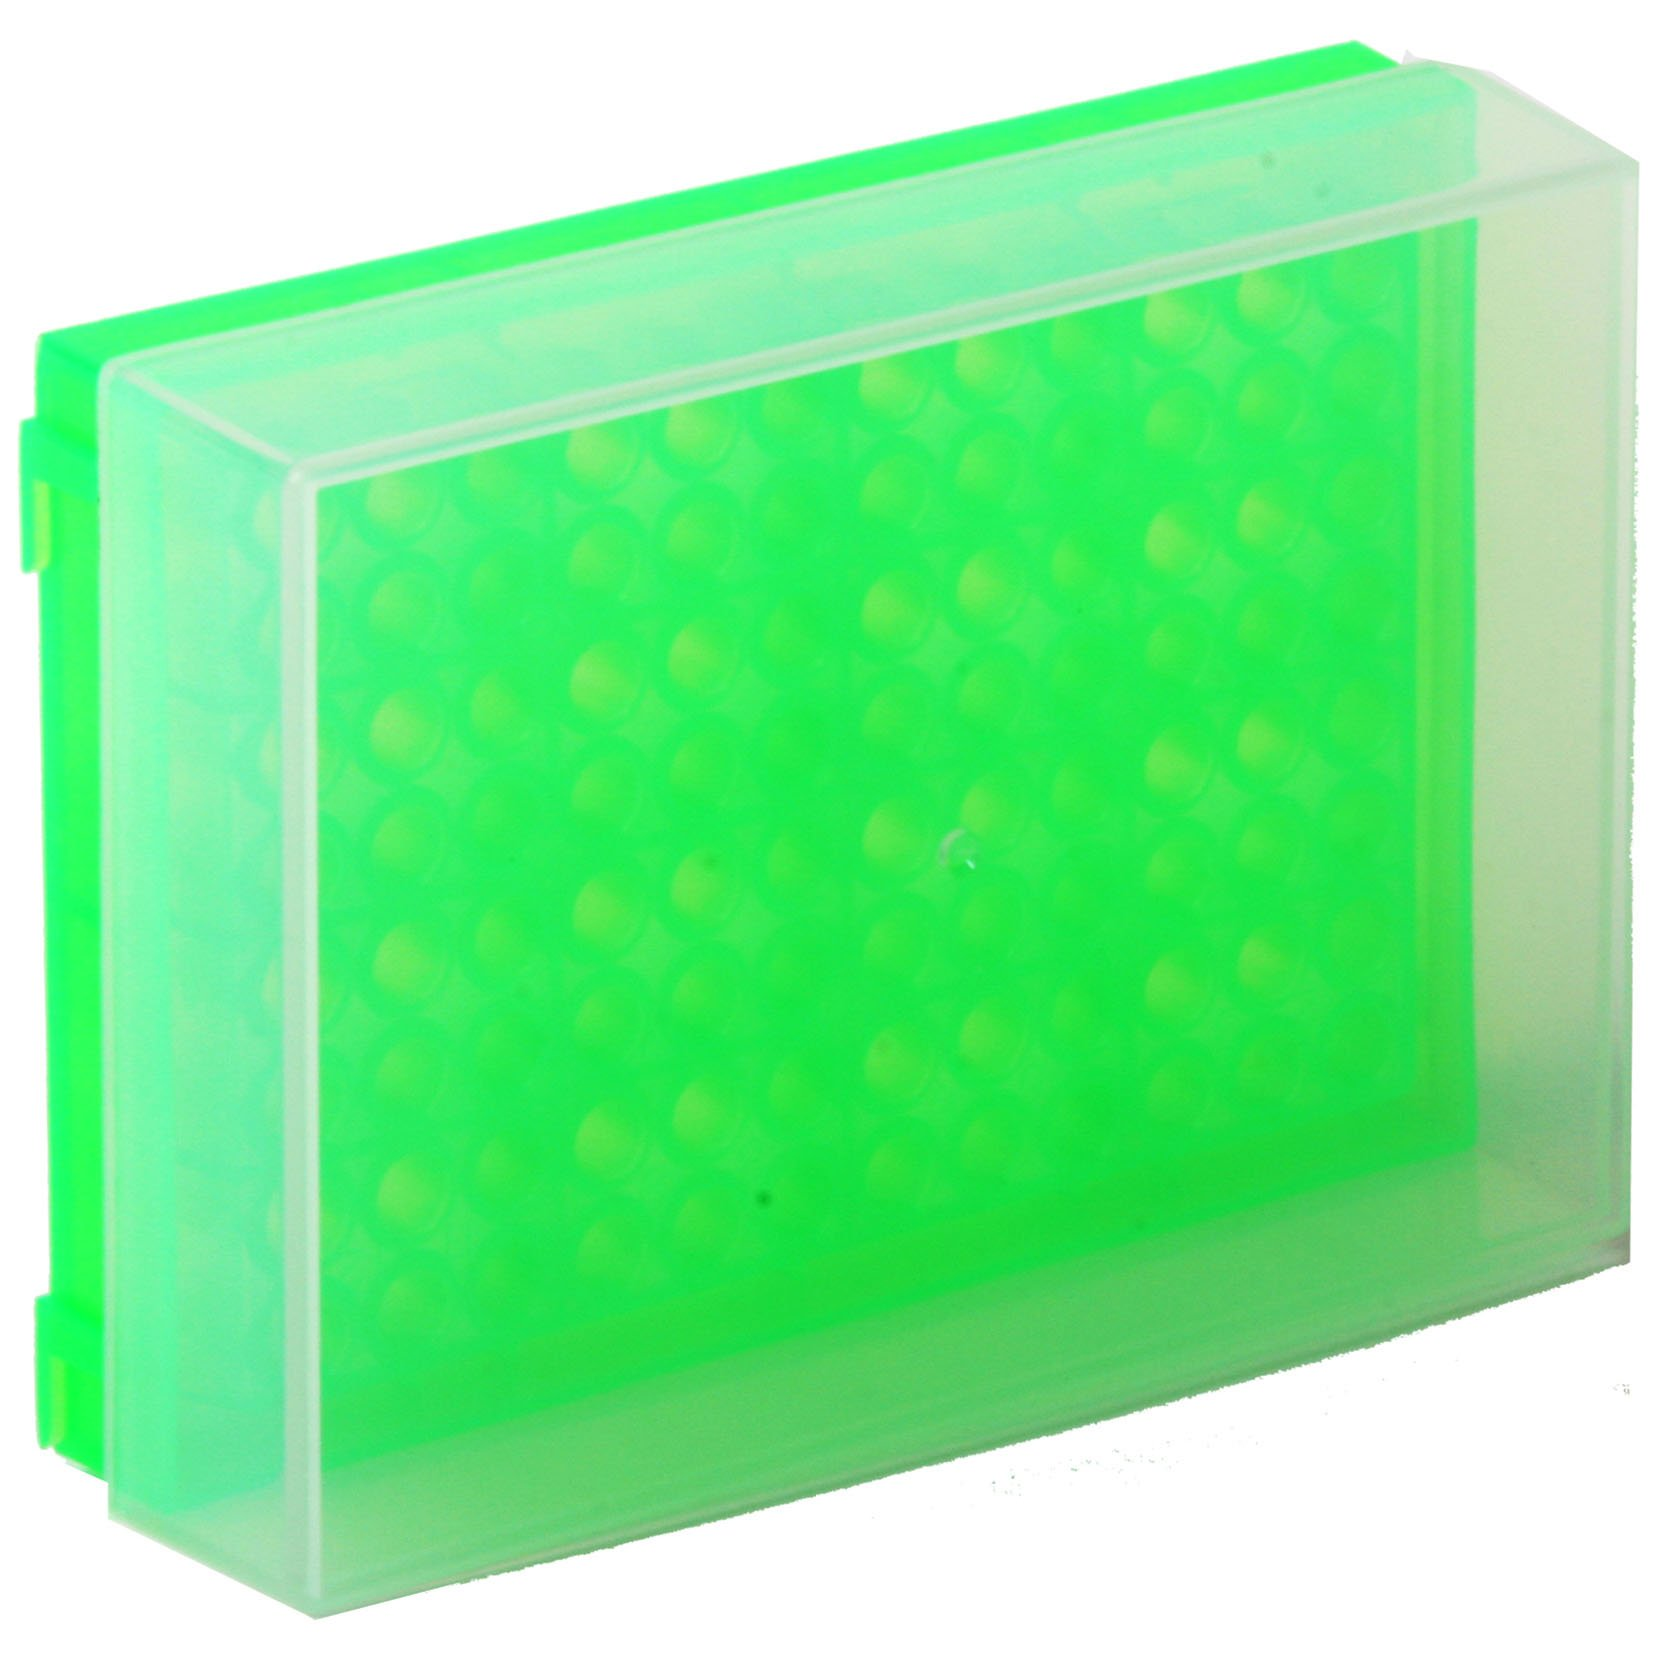 96-Well Preparation Rack with Cover - Fluorescent Green